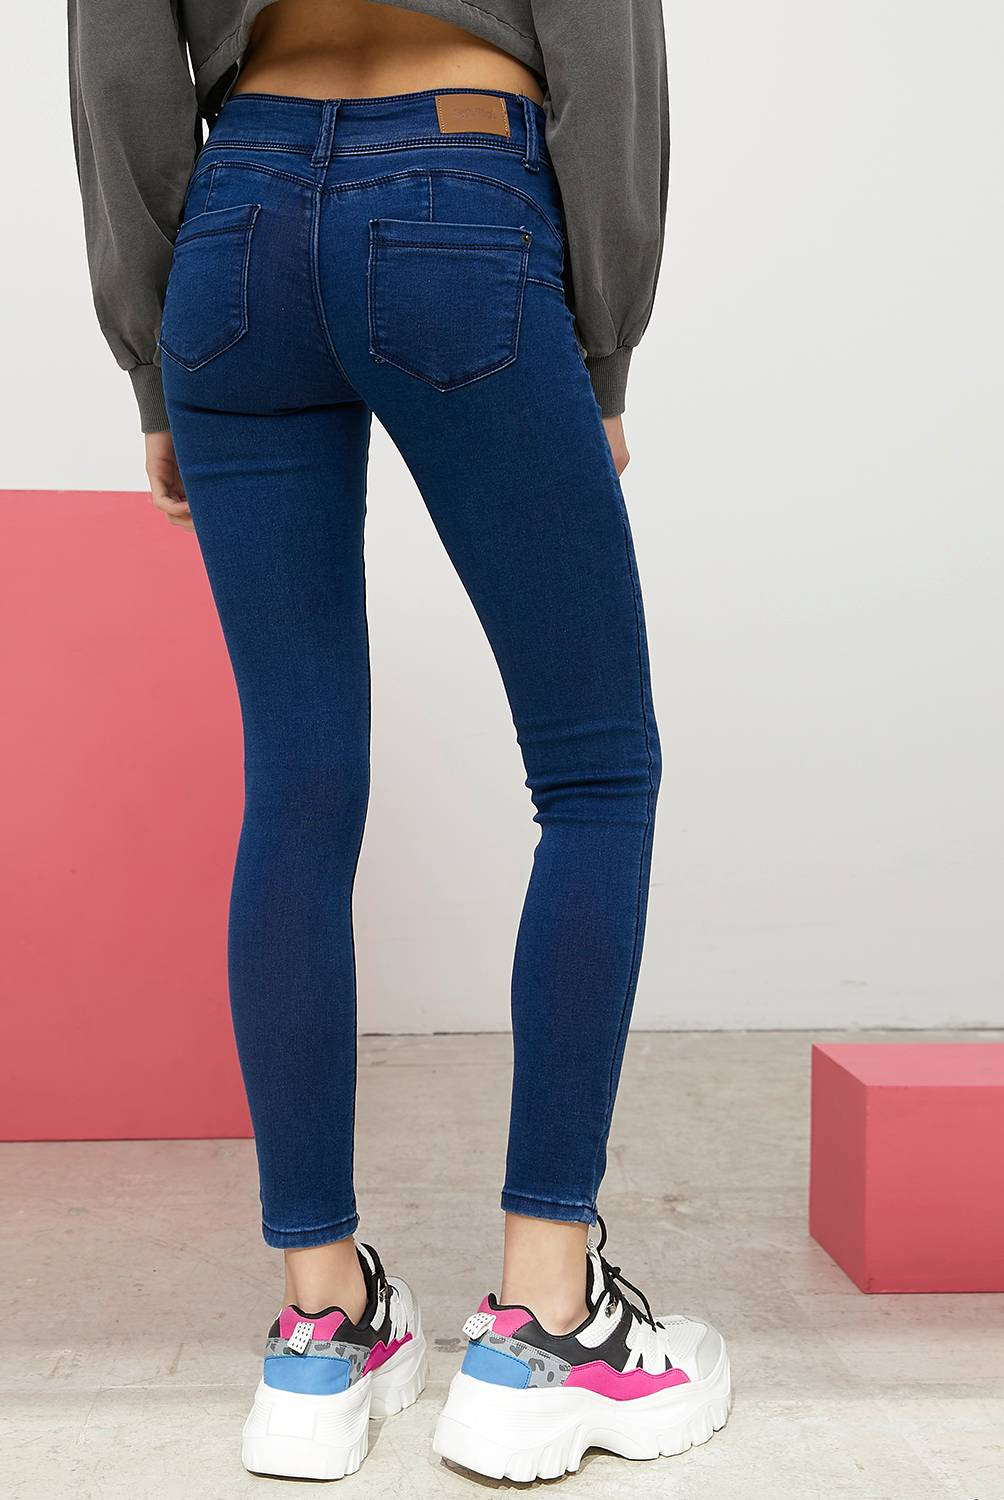 Sybilla - Jeans Skinny Fit Mujer